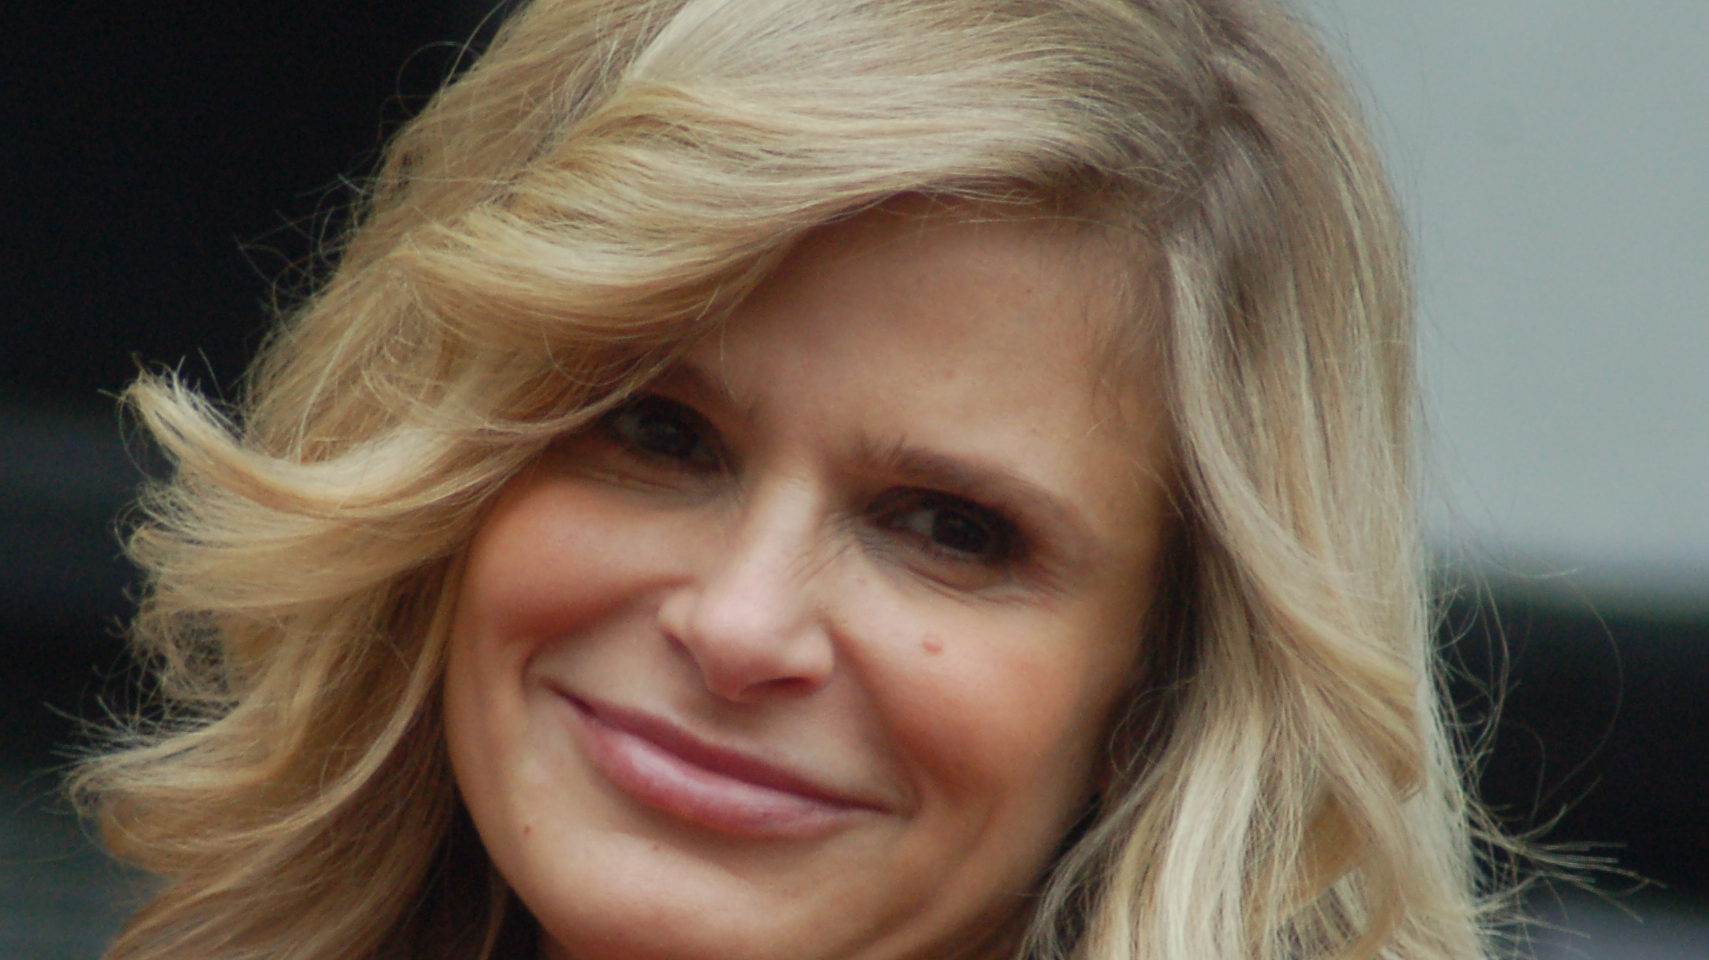 Kyra Sedgwick to direct supernatural love story